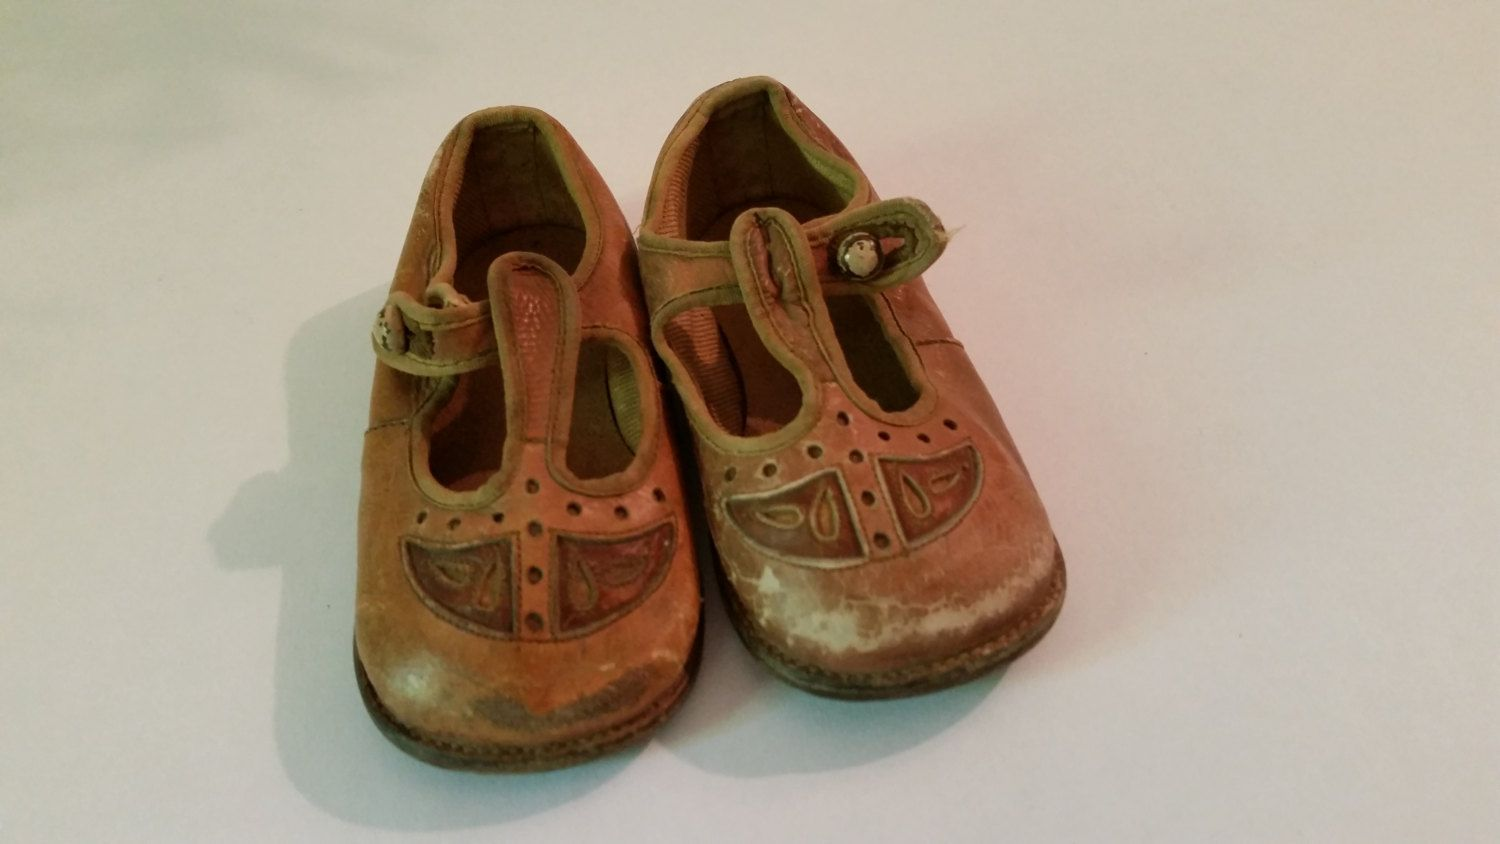 e11967893b5e1 1920's Children's Shoes Vintage Brown Leather Mary Jane Baby Shoes ...